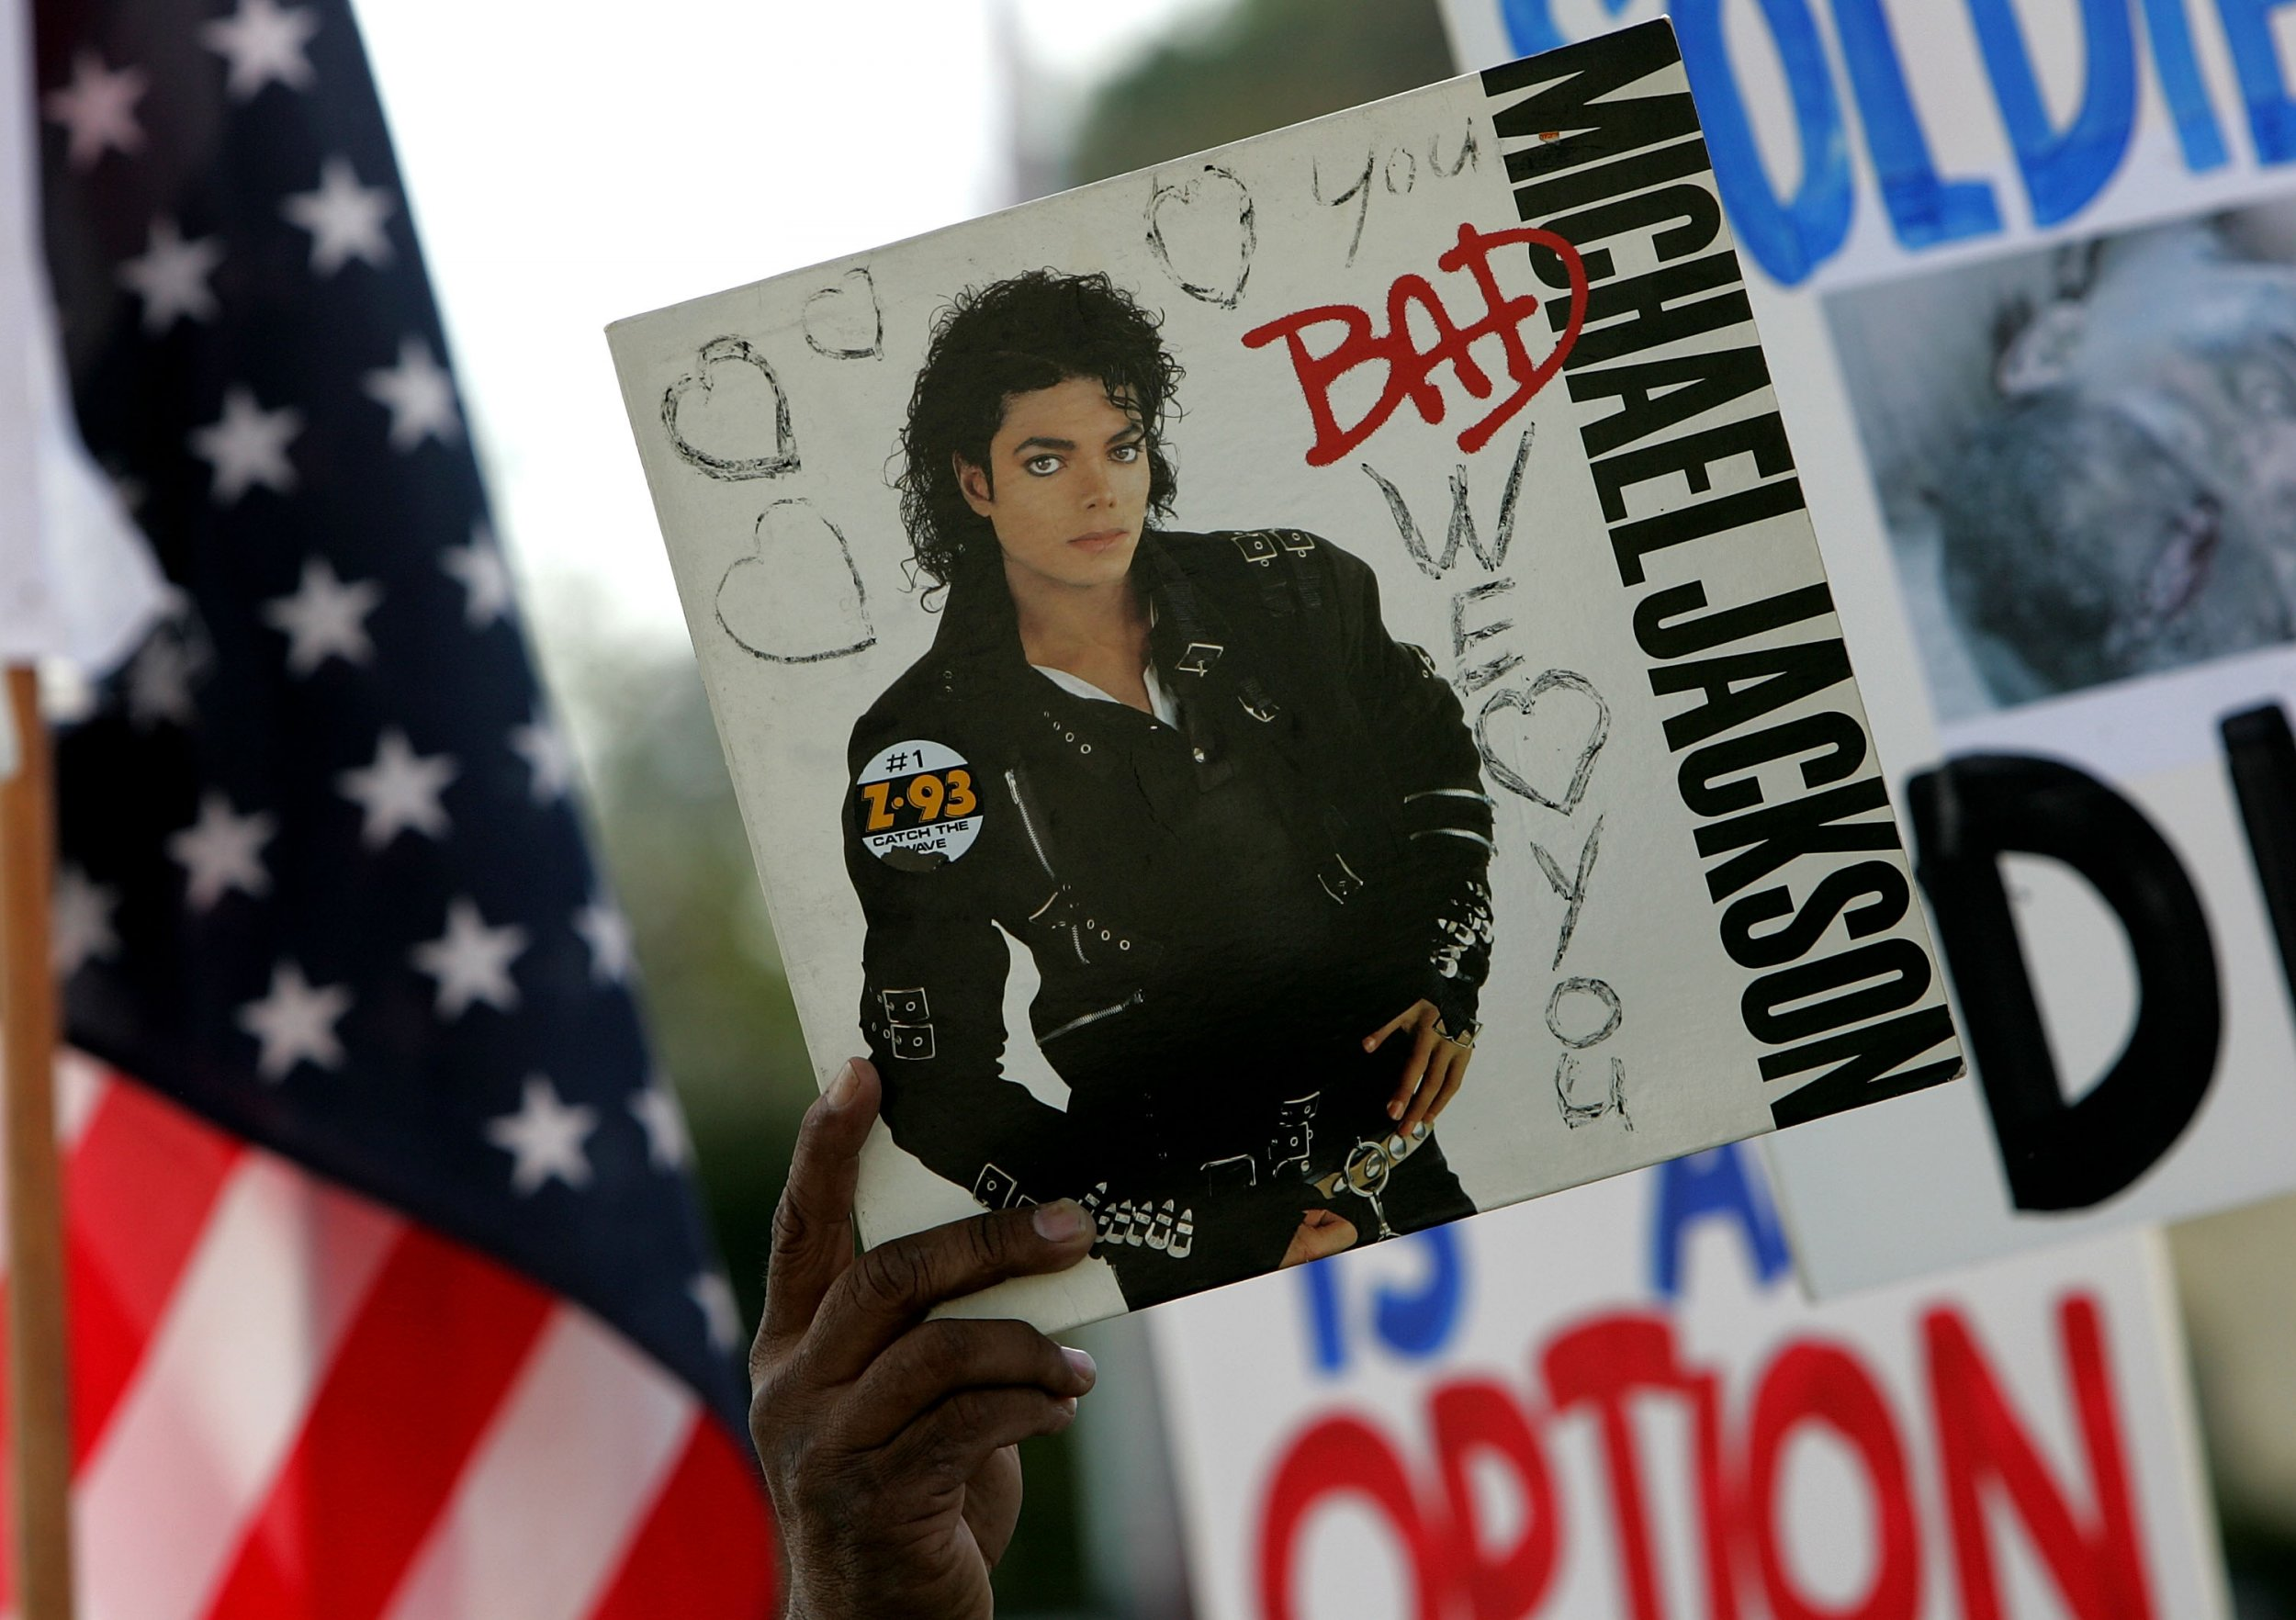 Michael Jackson's 'Bad' at 30: Every song, ranked from best to worst